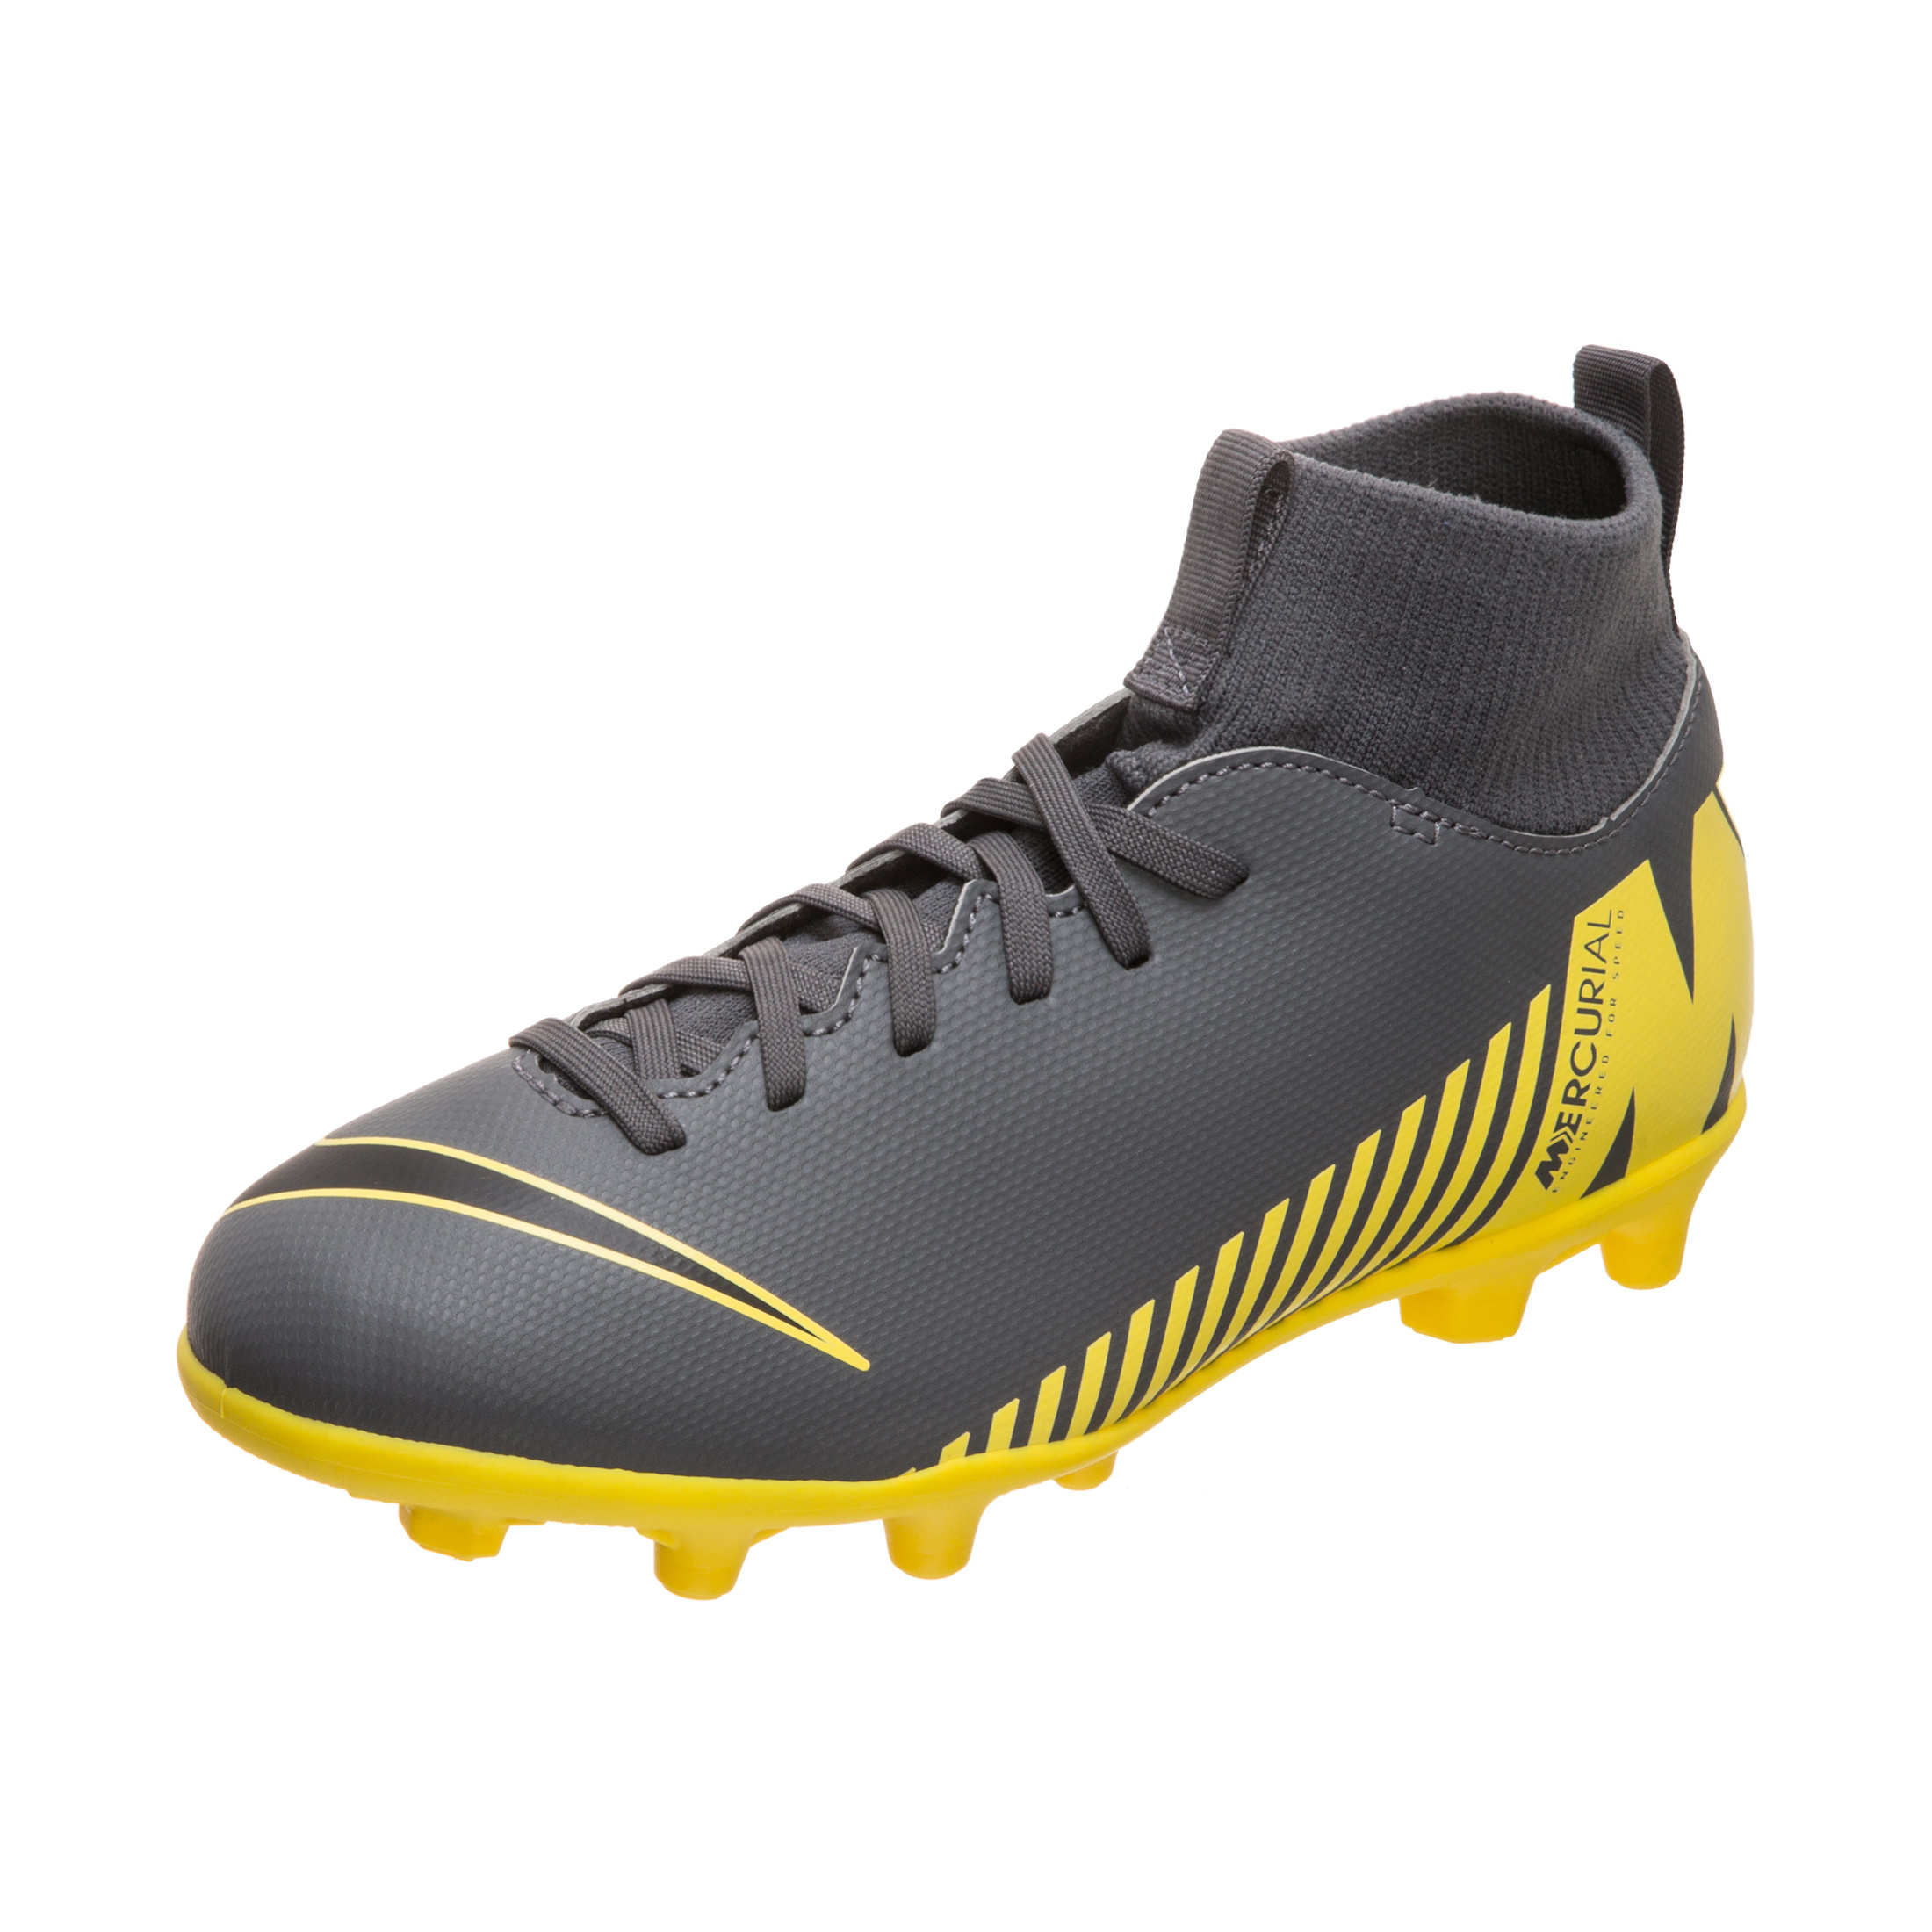 dafeee1d7 Nike Mercurial Superfly 6 Club MG Game Over - Dark Grey/Opti Yellow |  AH7339-070 | FOOTY.COM